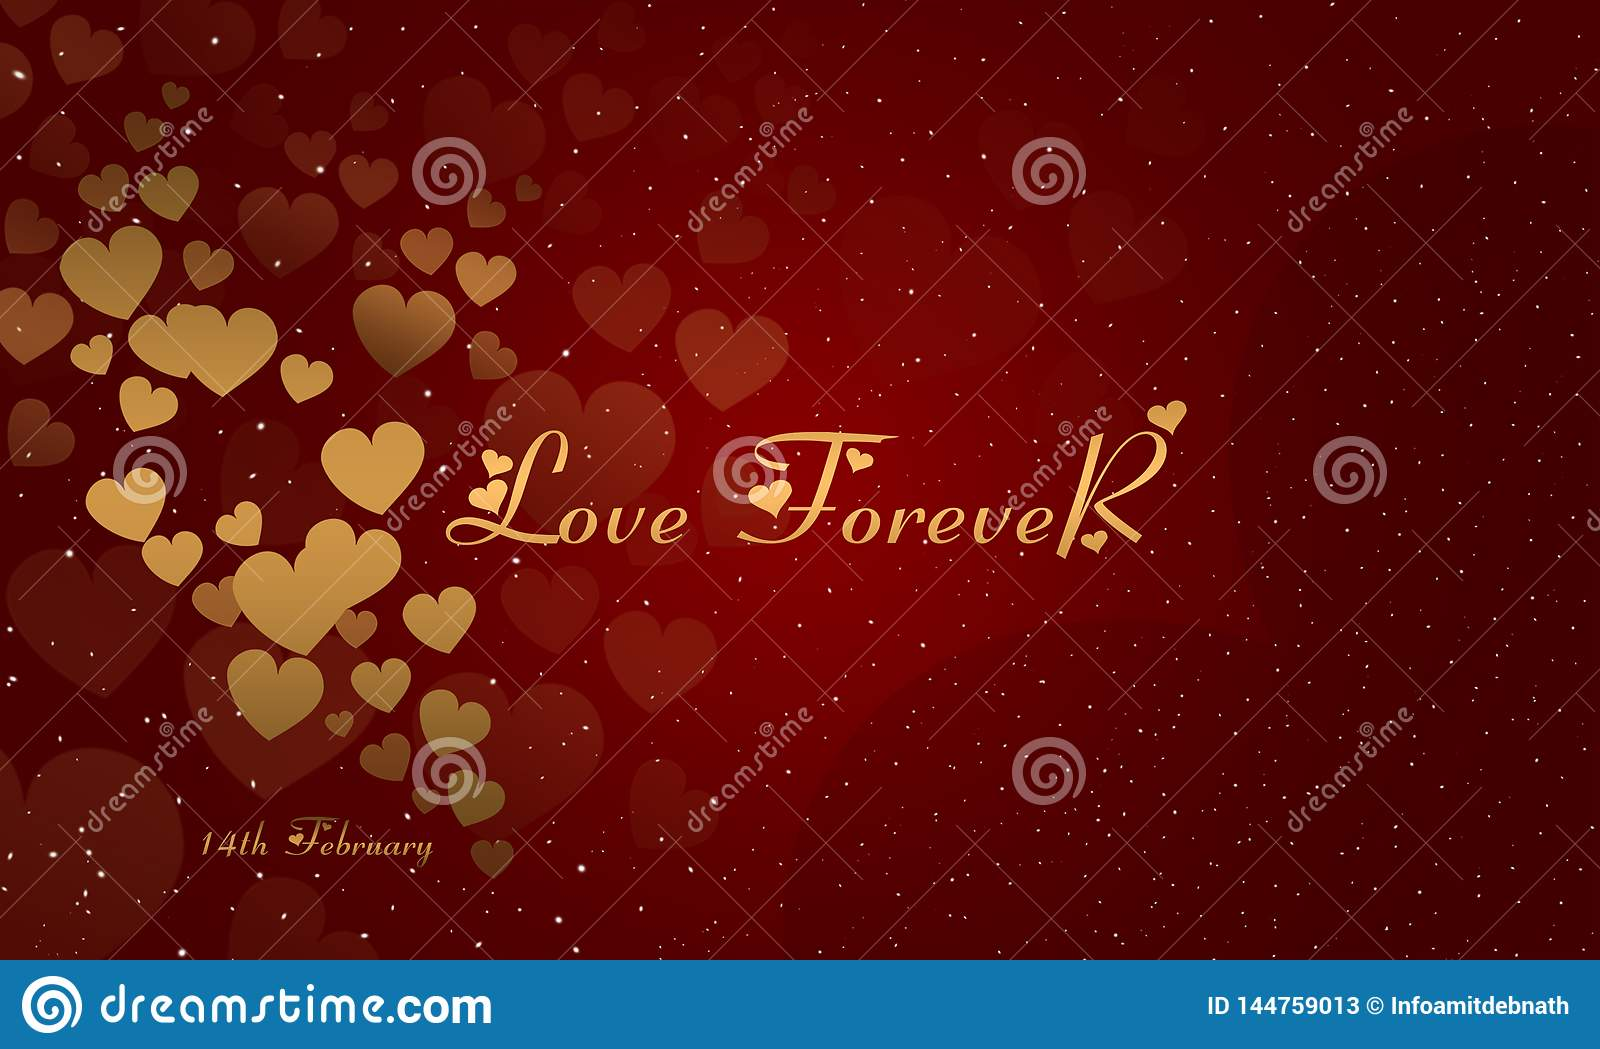 Valentines Day Background Image. Love day. Valentines day. love forever